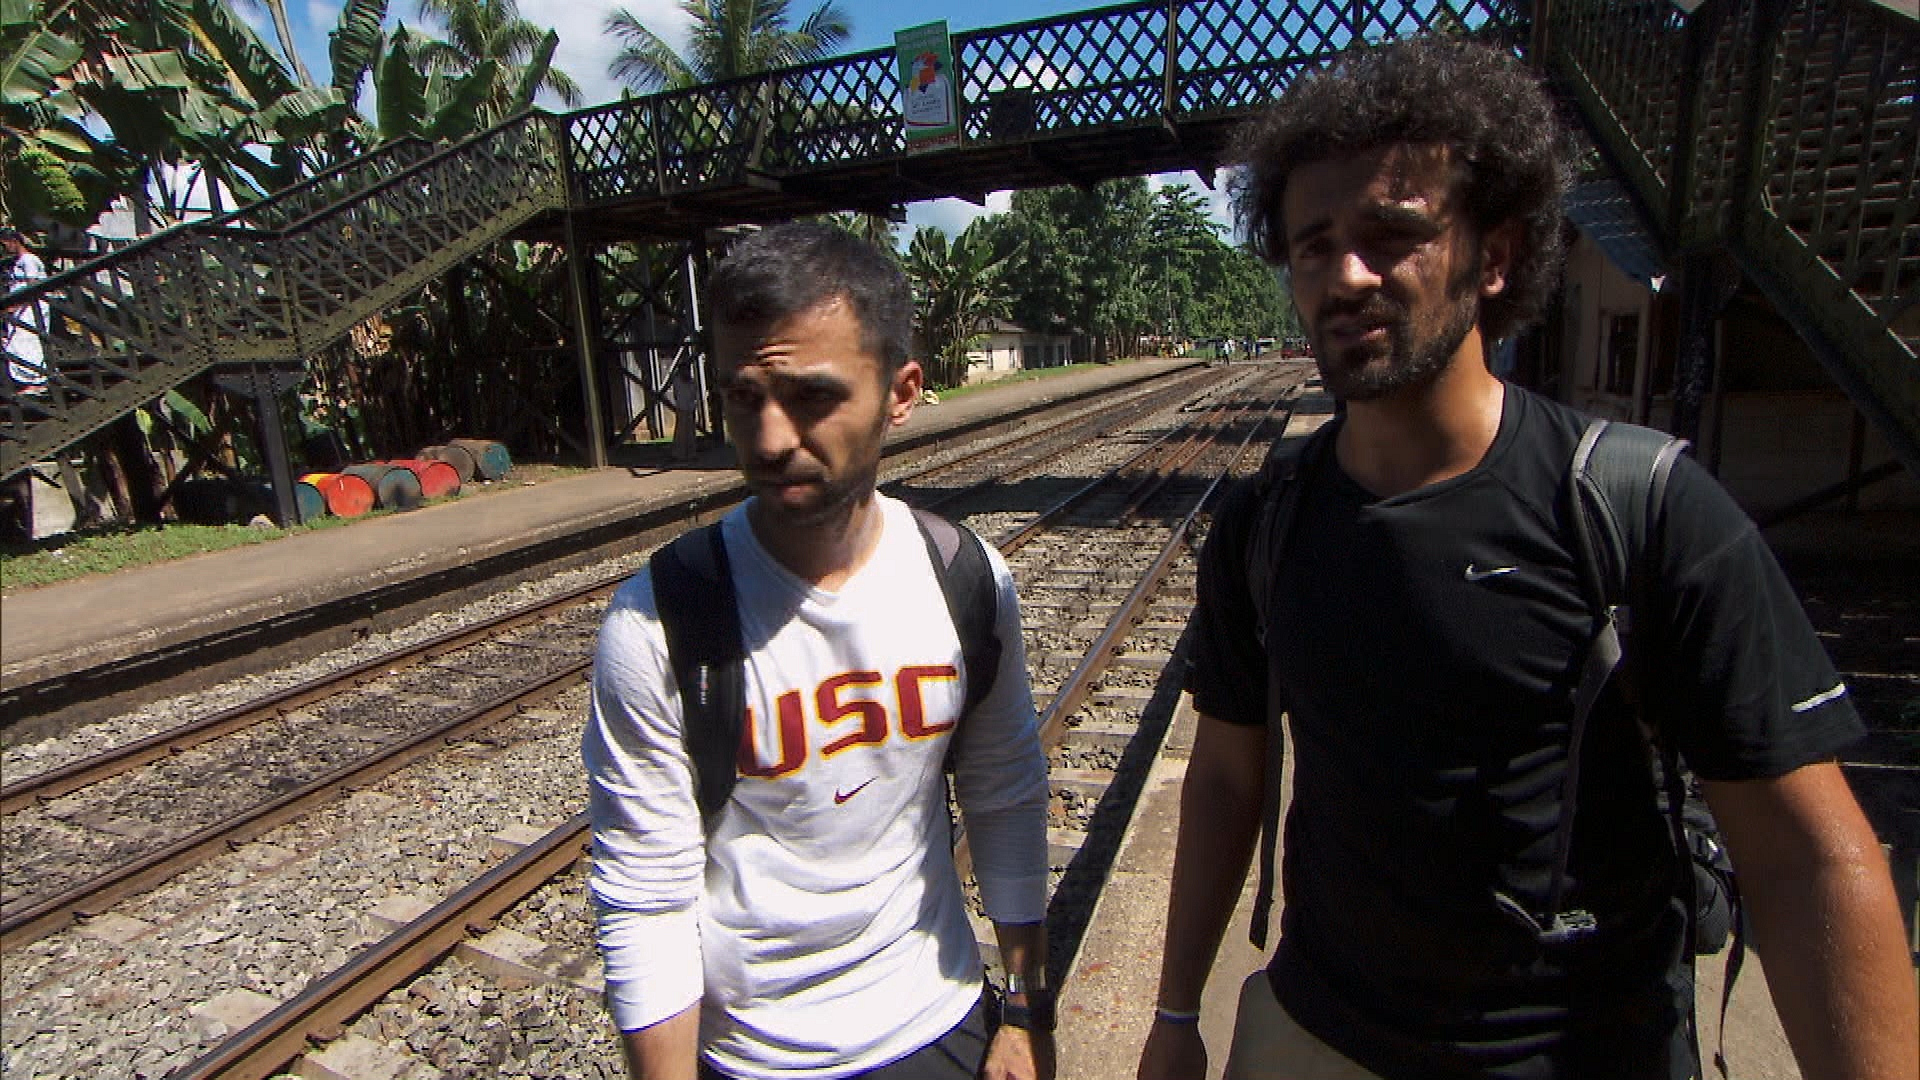 Waiting for a train in Season 24 Episode 6